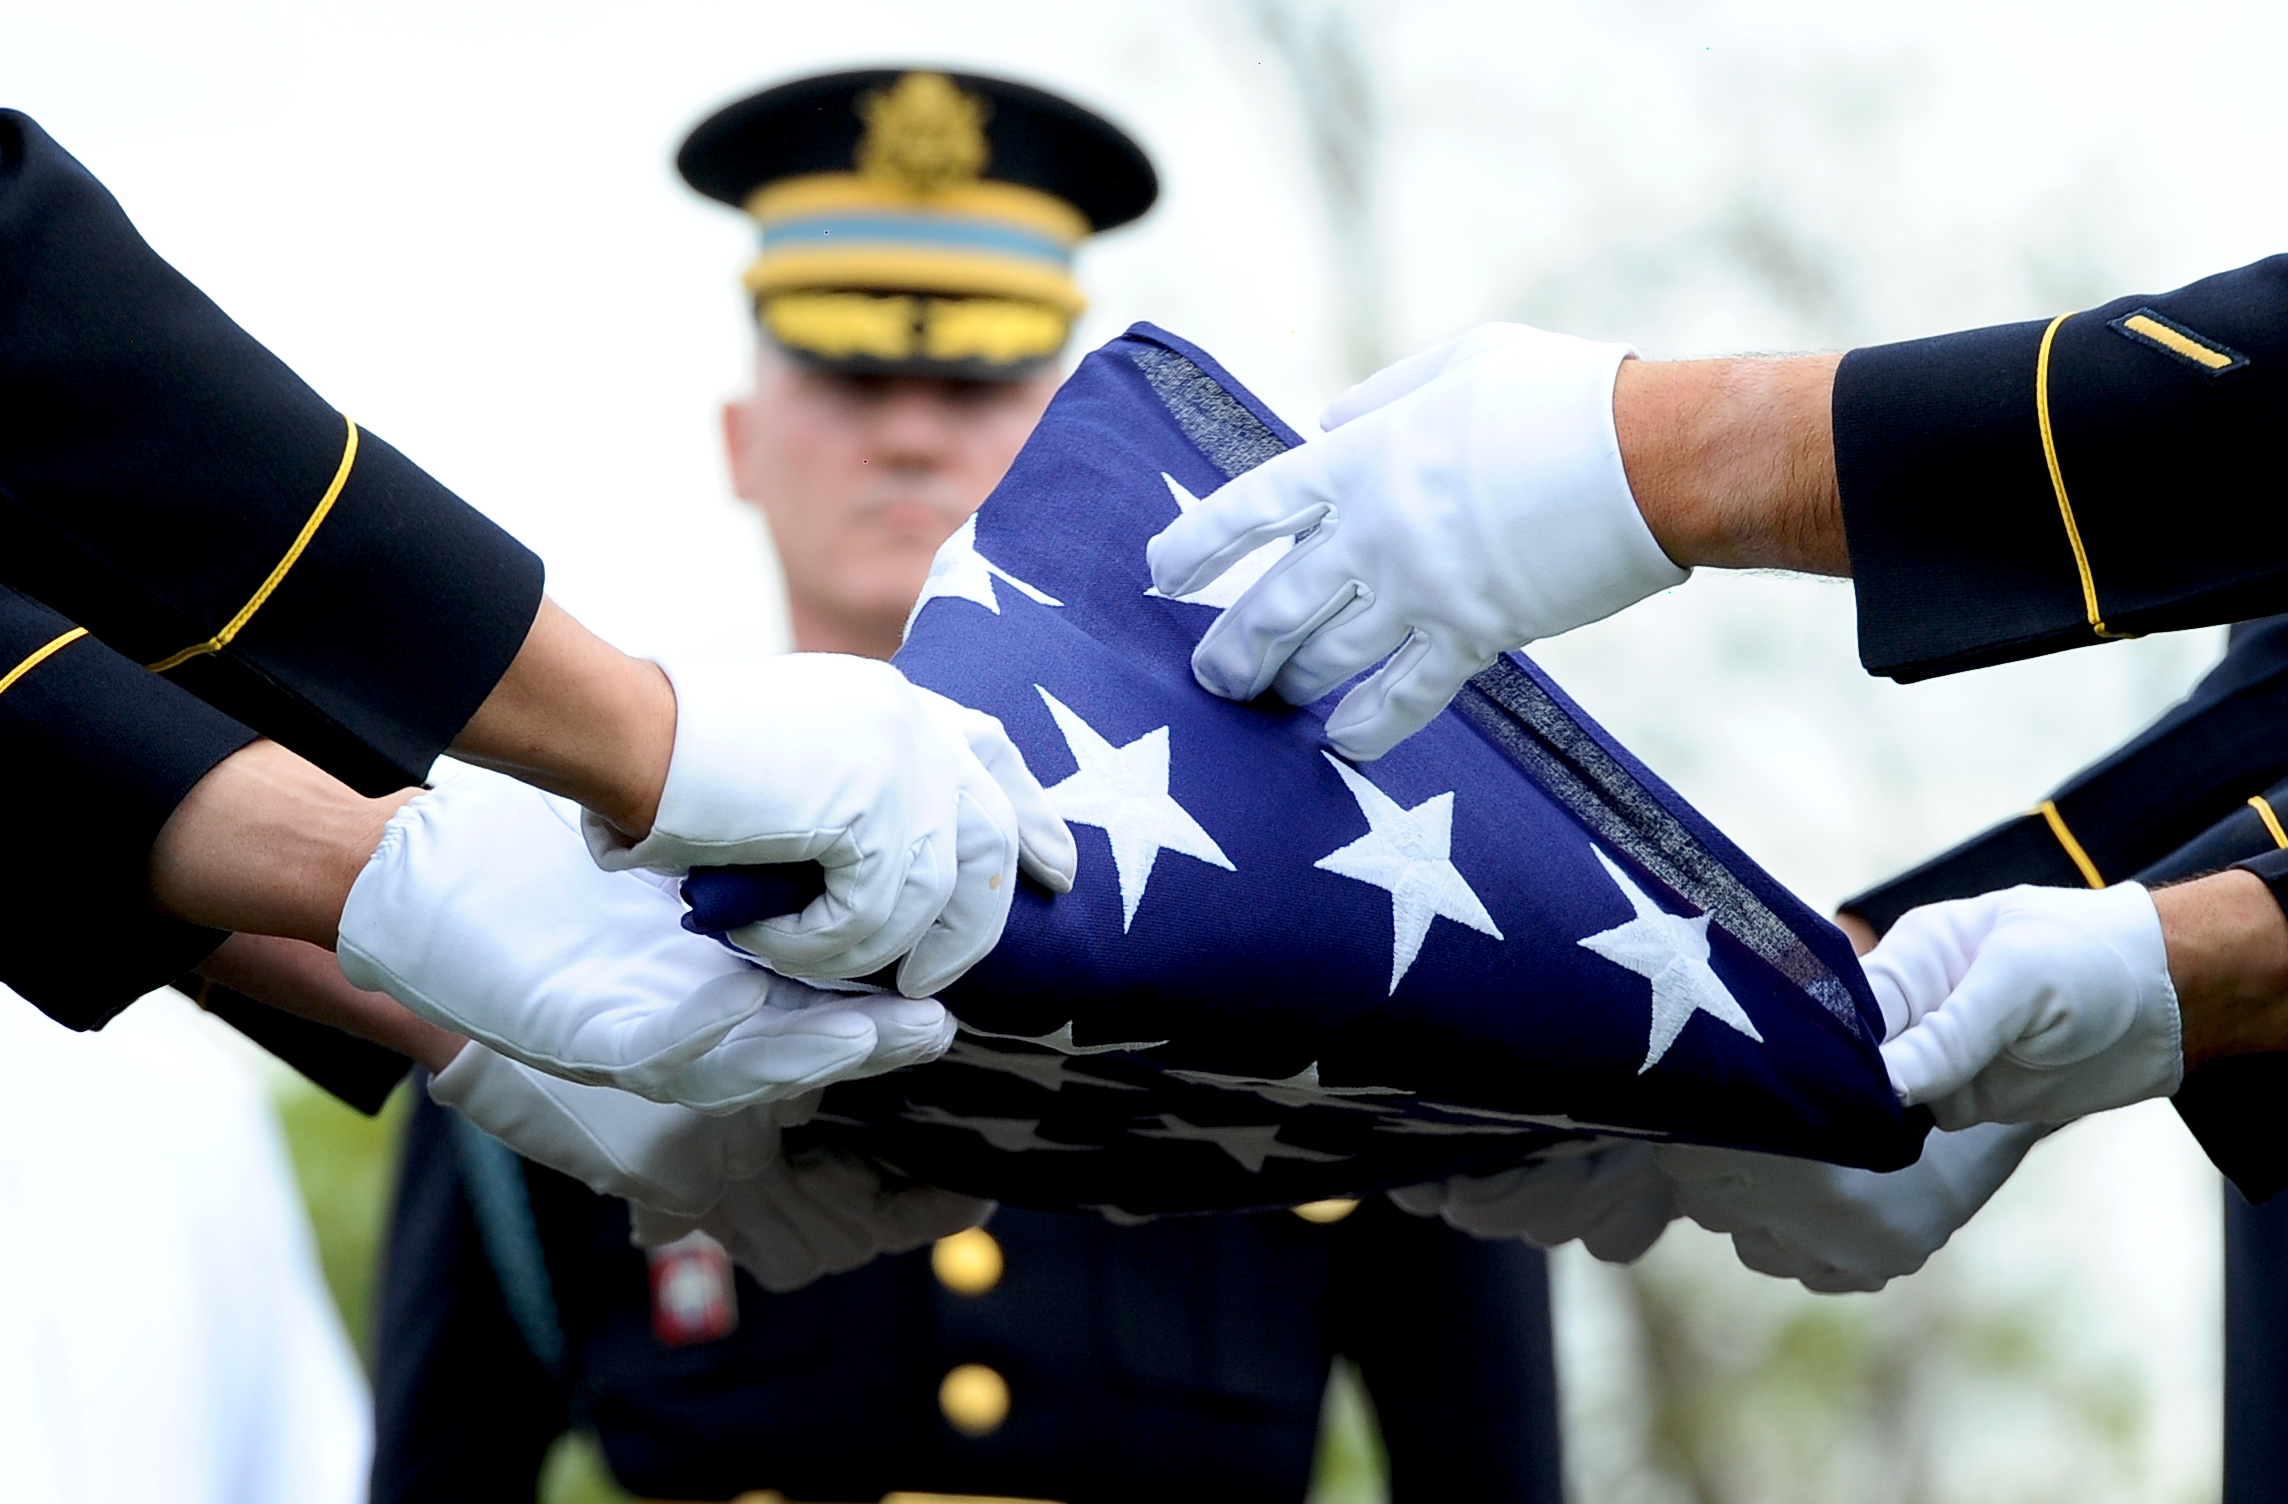 Members of The Old Guard fold the flag during the burial service for a U.S. soldier killed in combat. The service was held at Arlington National Cemetery in Va. on April 17, 2013.